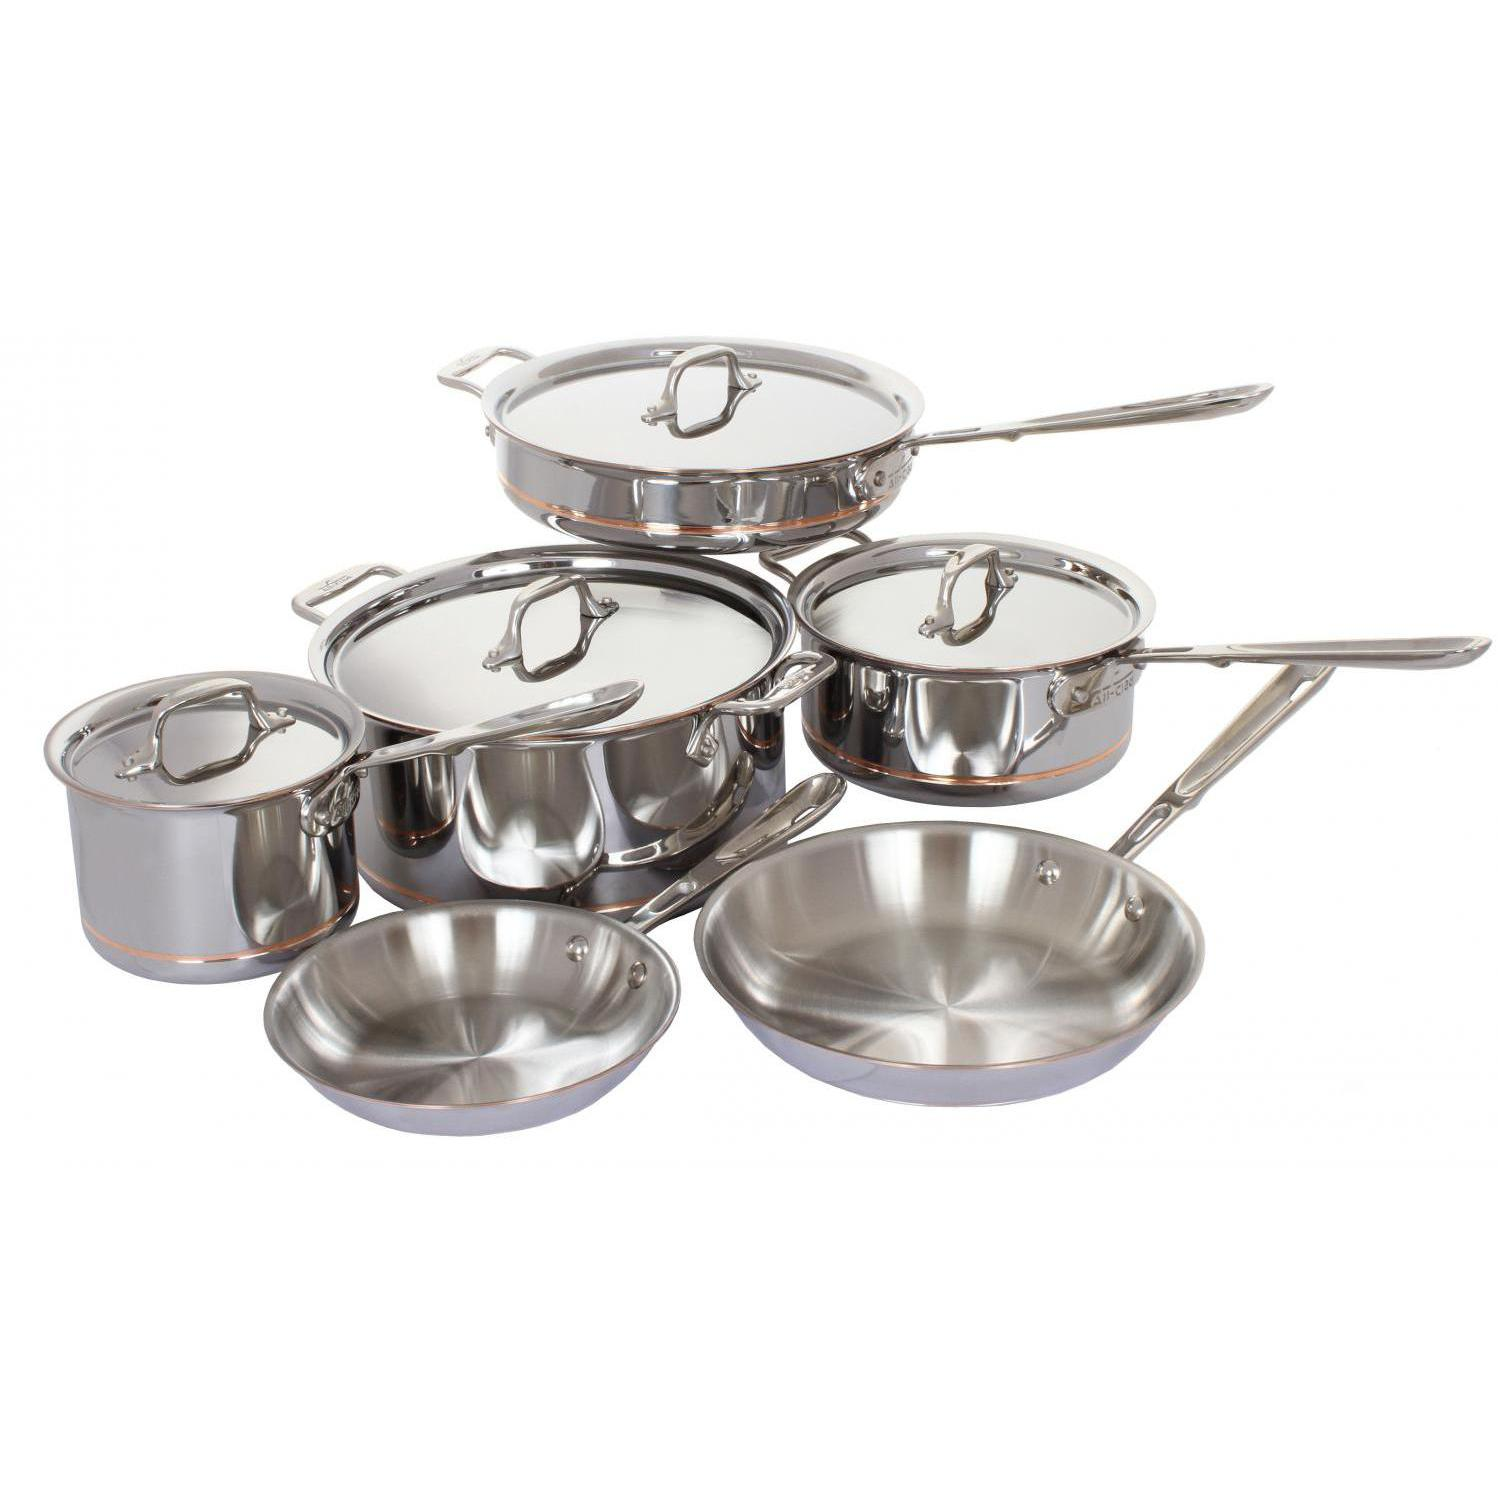 All-Clad Copper-Core Stainless Steel 10-Piece Cookware Set